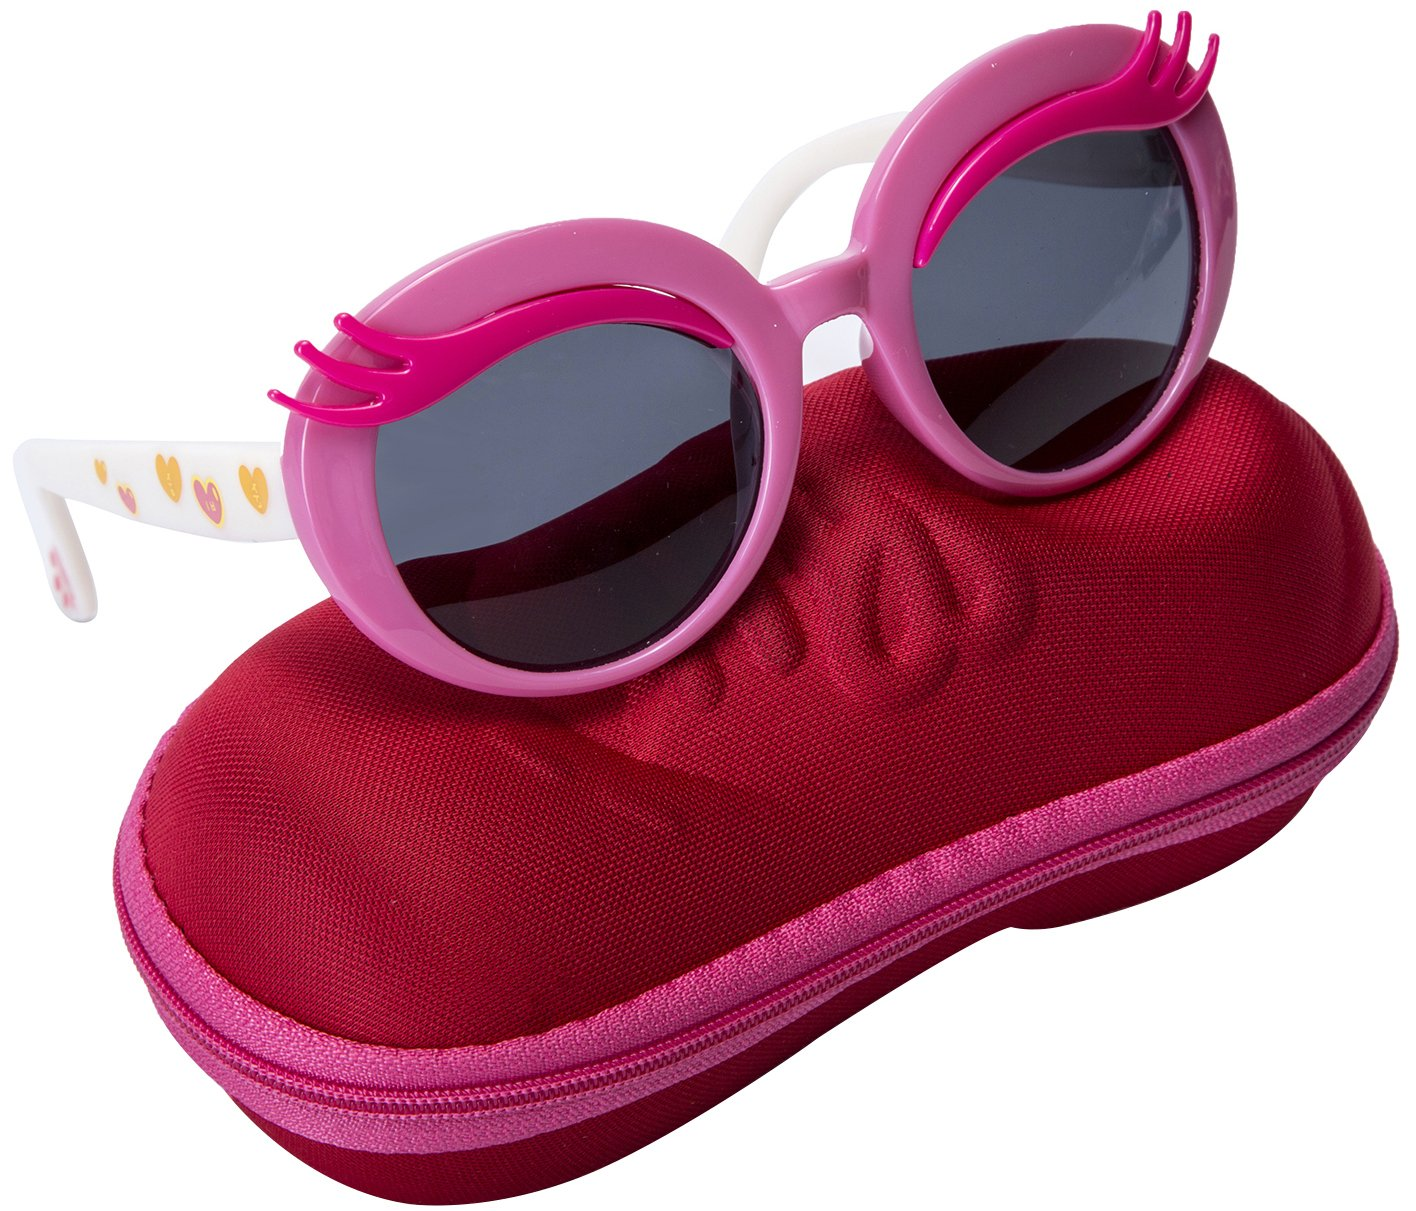 Comcl Girls Eyelash Polarized Sunglasses - UV Protection Kids Sunglasses 45mm Fit for Aged 4-9 With Shoe Shape Case by Comcl